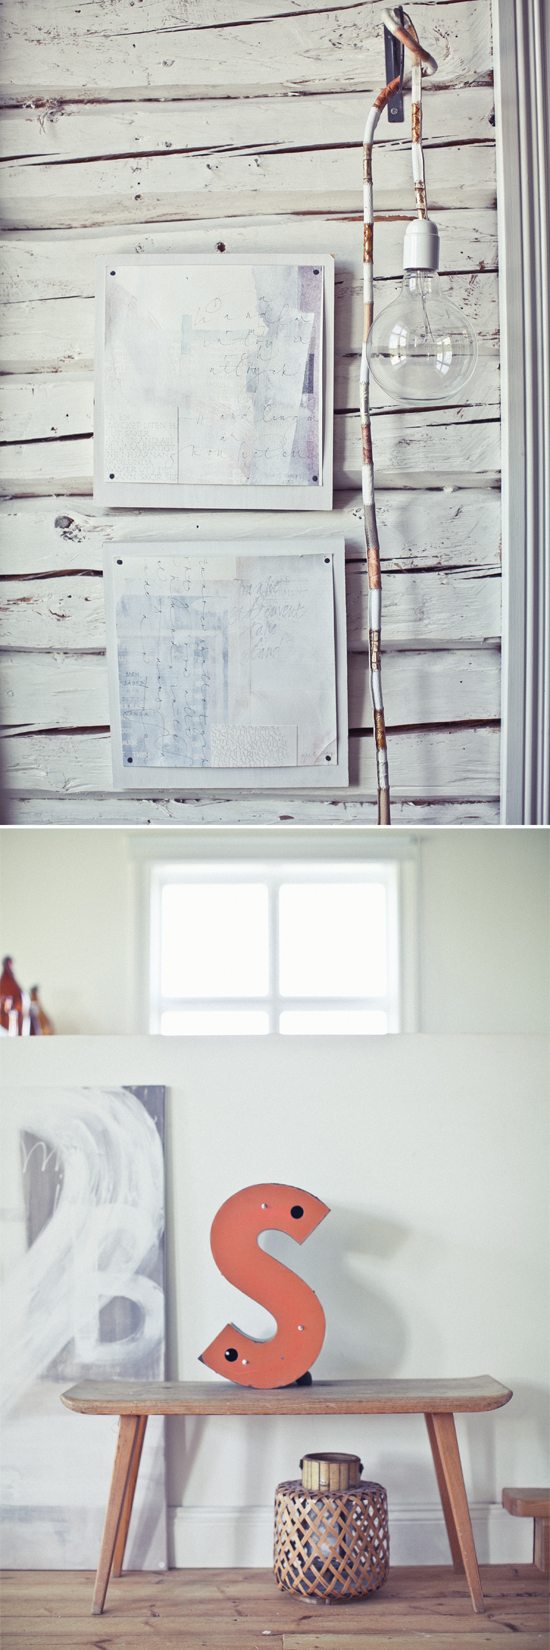 Love how she tacked her art on a simple painted board. Great framing ...